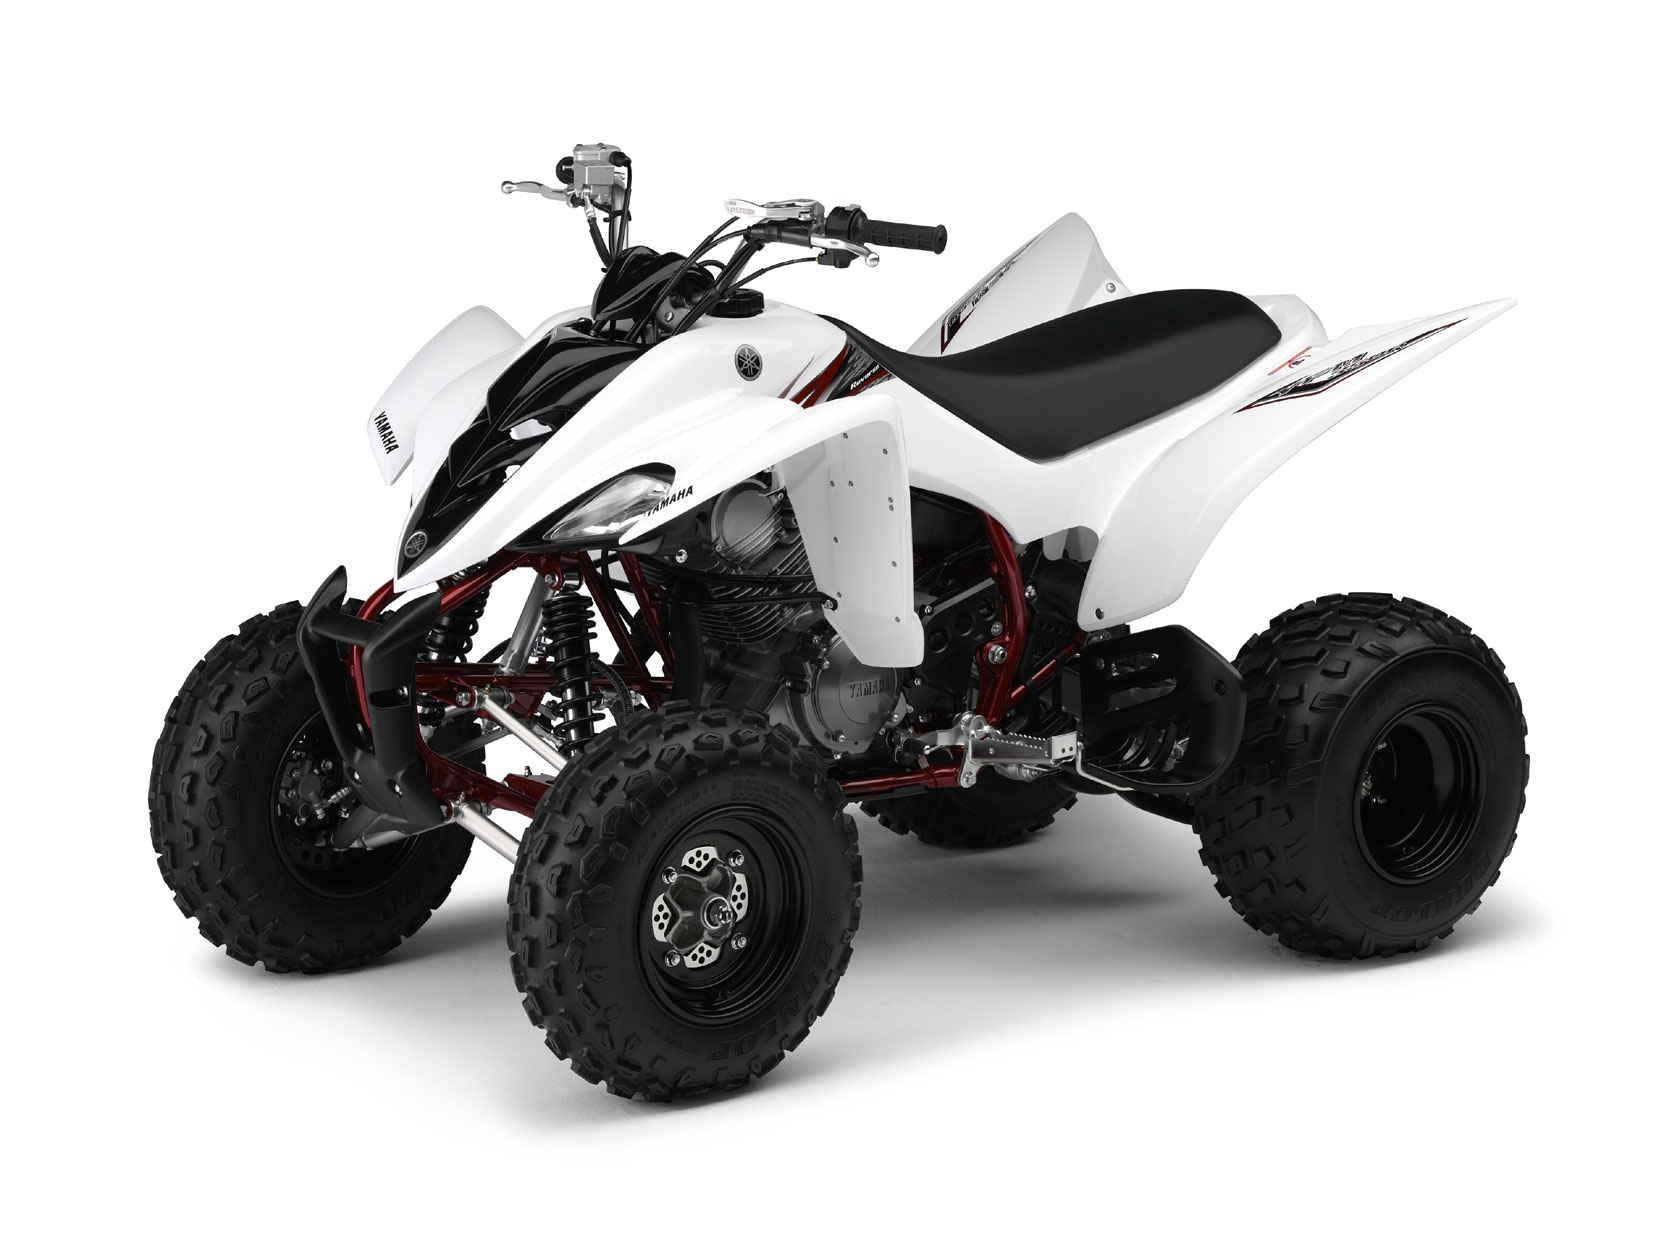 2009 Raptor 350 Engine Diagram Books Of Wiring Yamaha Warrior 4 Wheeler Specs 2008 Autoevolution Rh Com